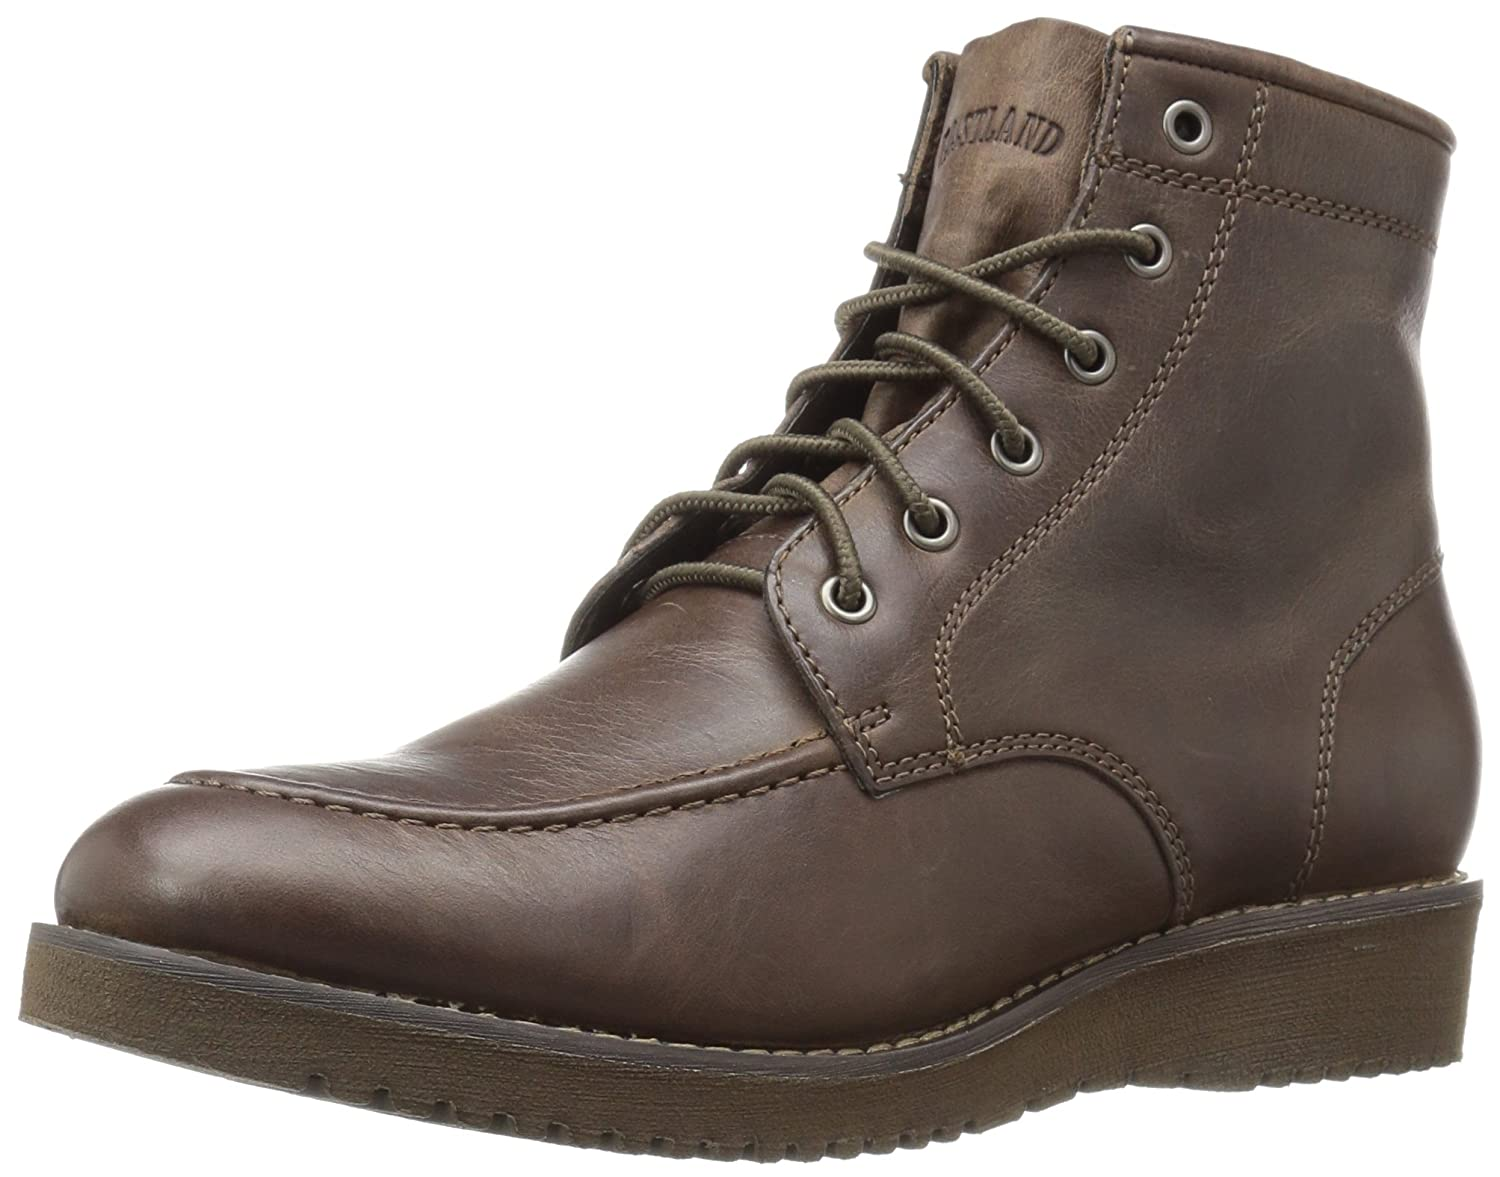 Eastland Women's Dakota Winter Boot B01DTJAZWG 7.5 B(M) US|Dark Tan